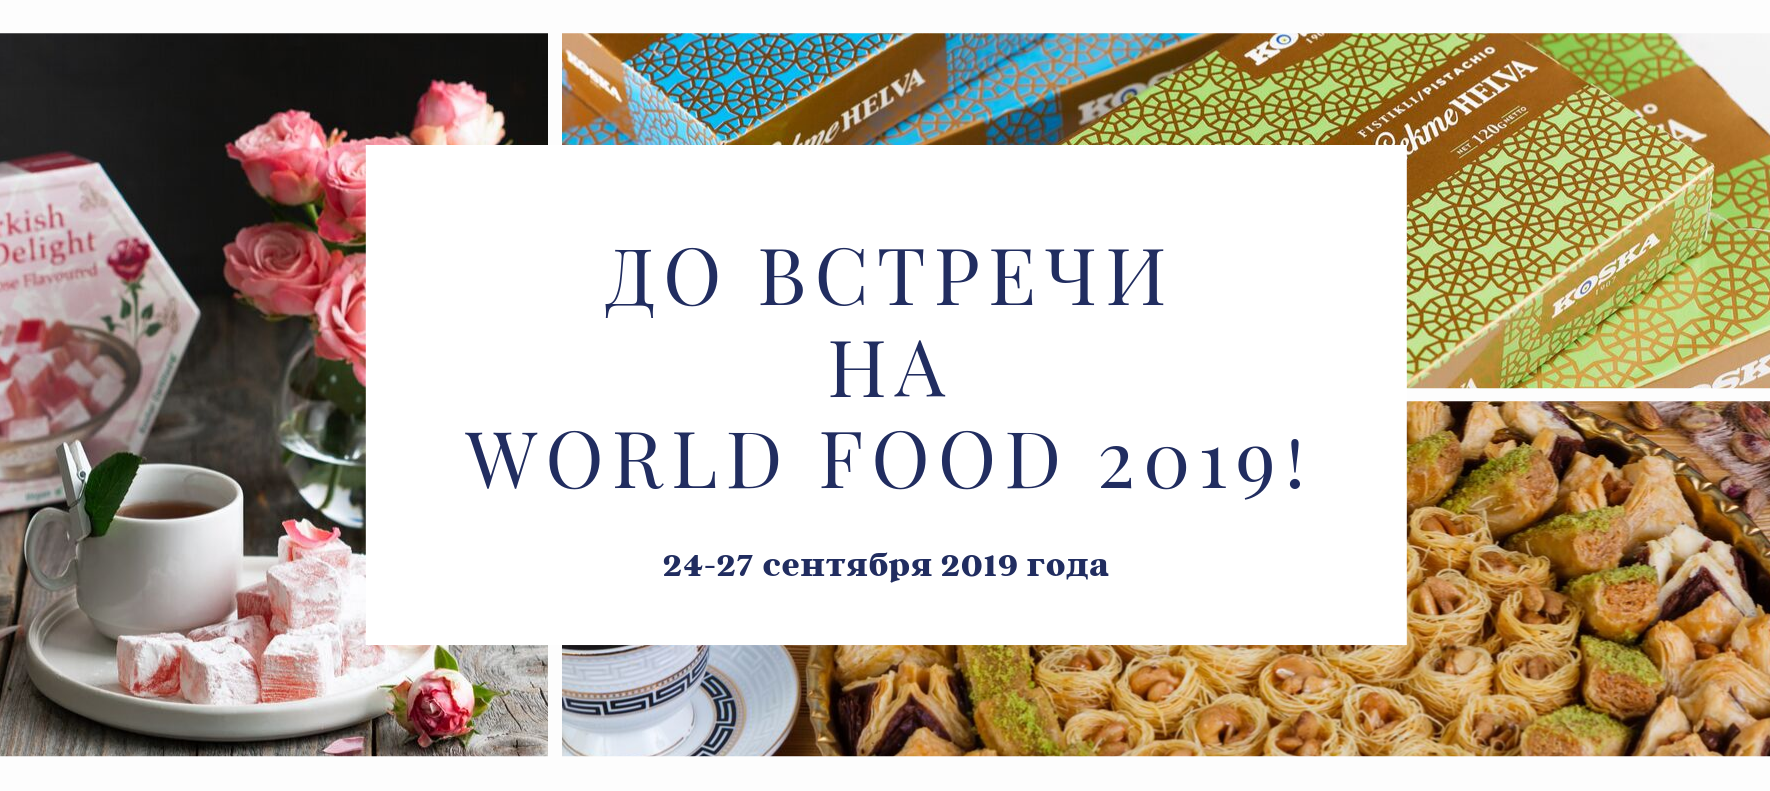 До встречи на WorldFood Moscow 2019!